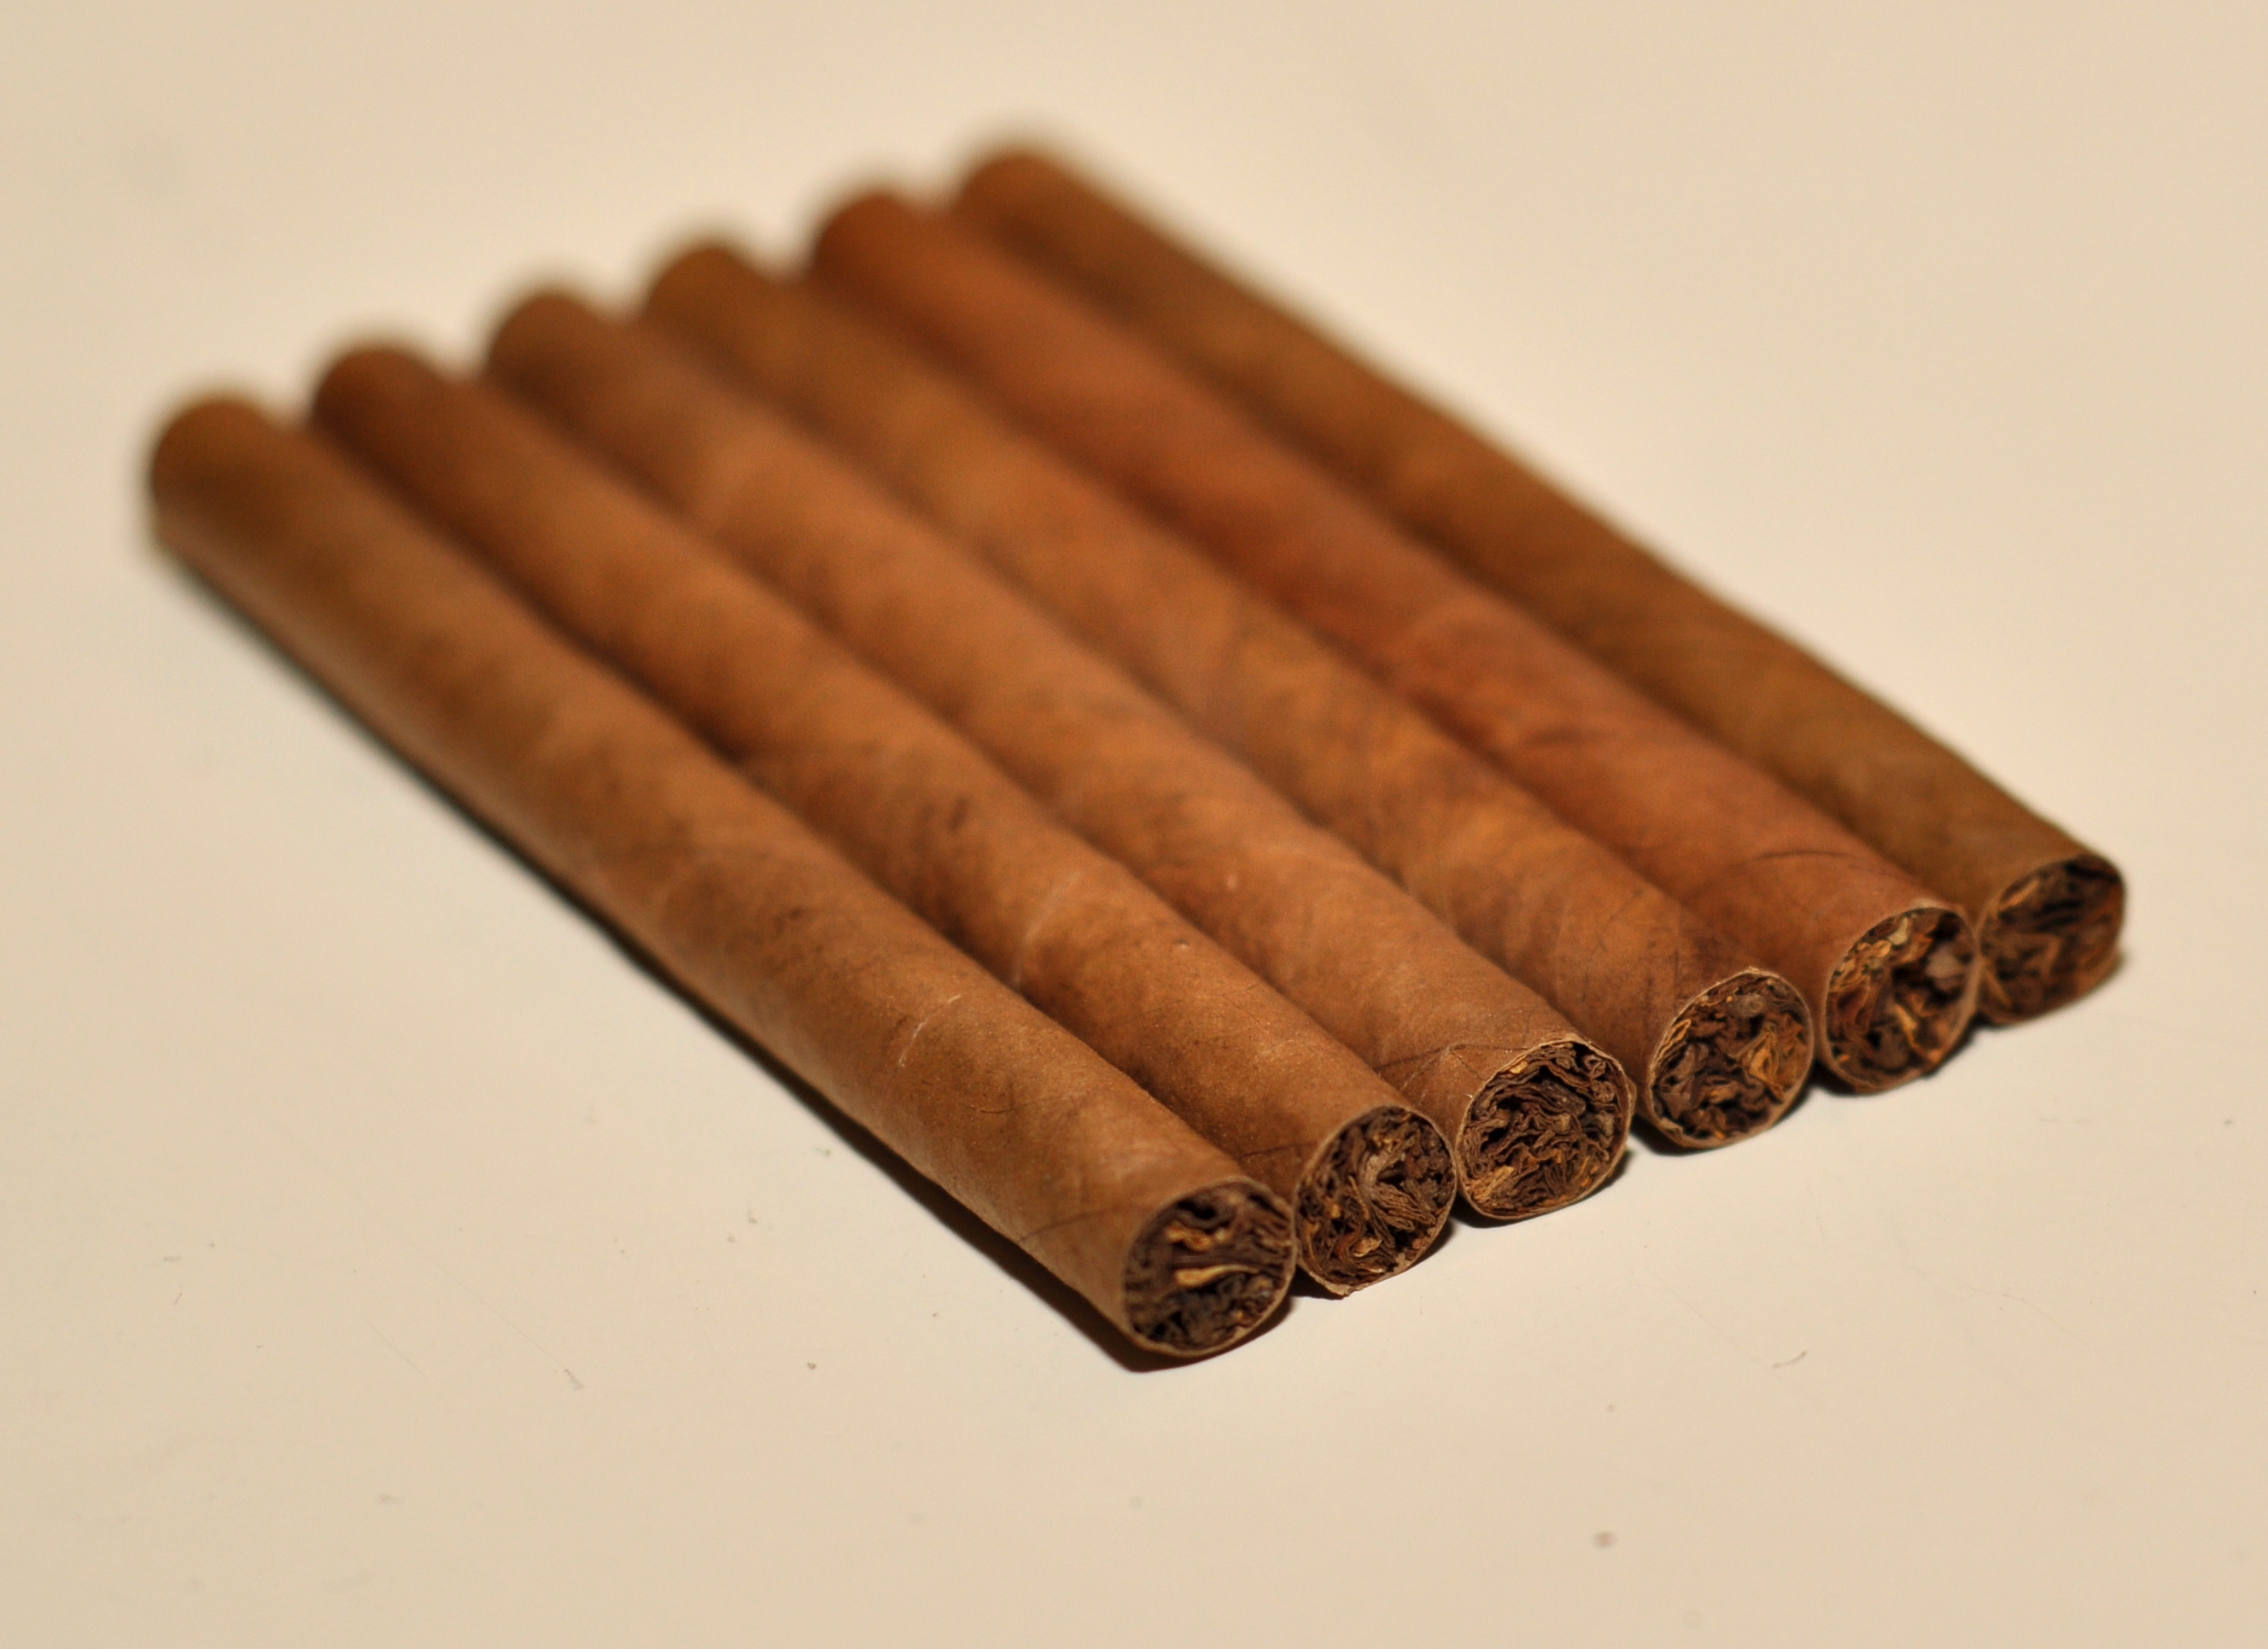 https://upload.wikimedia.org/wikipedia/commons/9/95/Caf%C3%A9_Cr%C3%A8me_Cigarillos.jpg